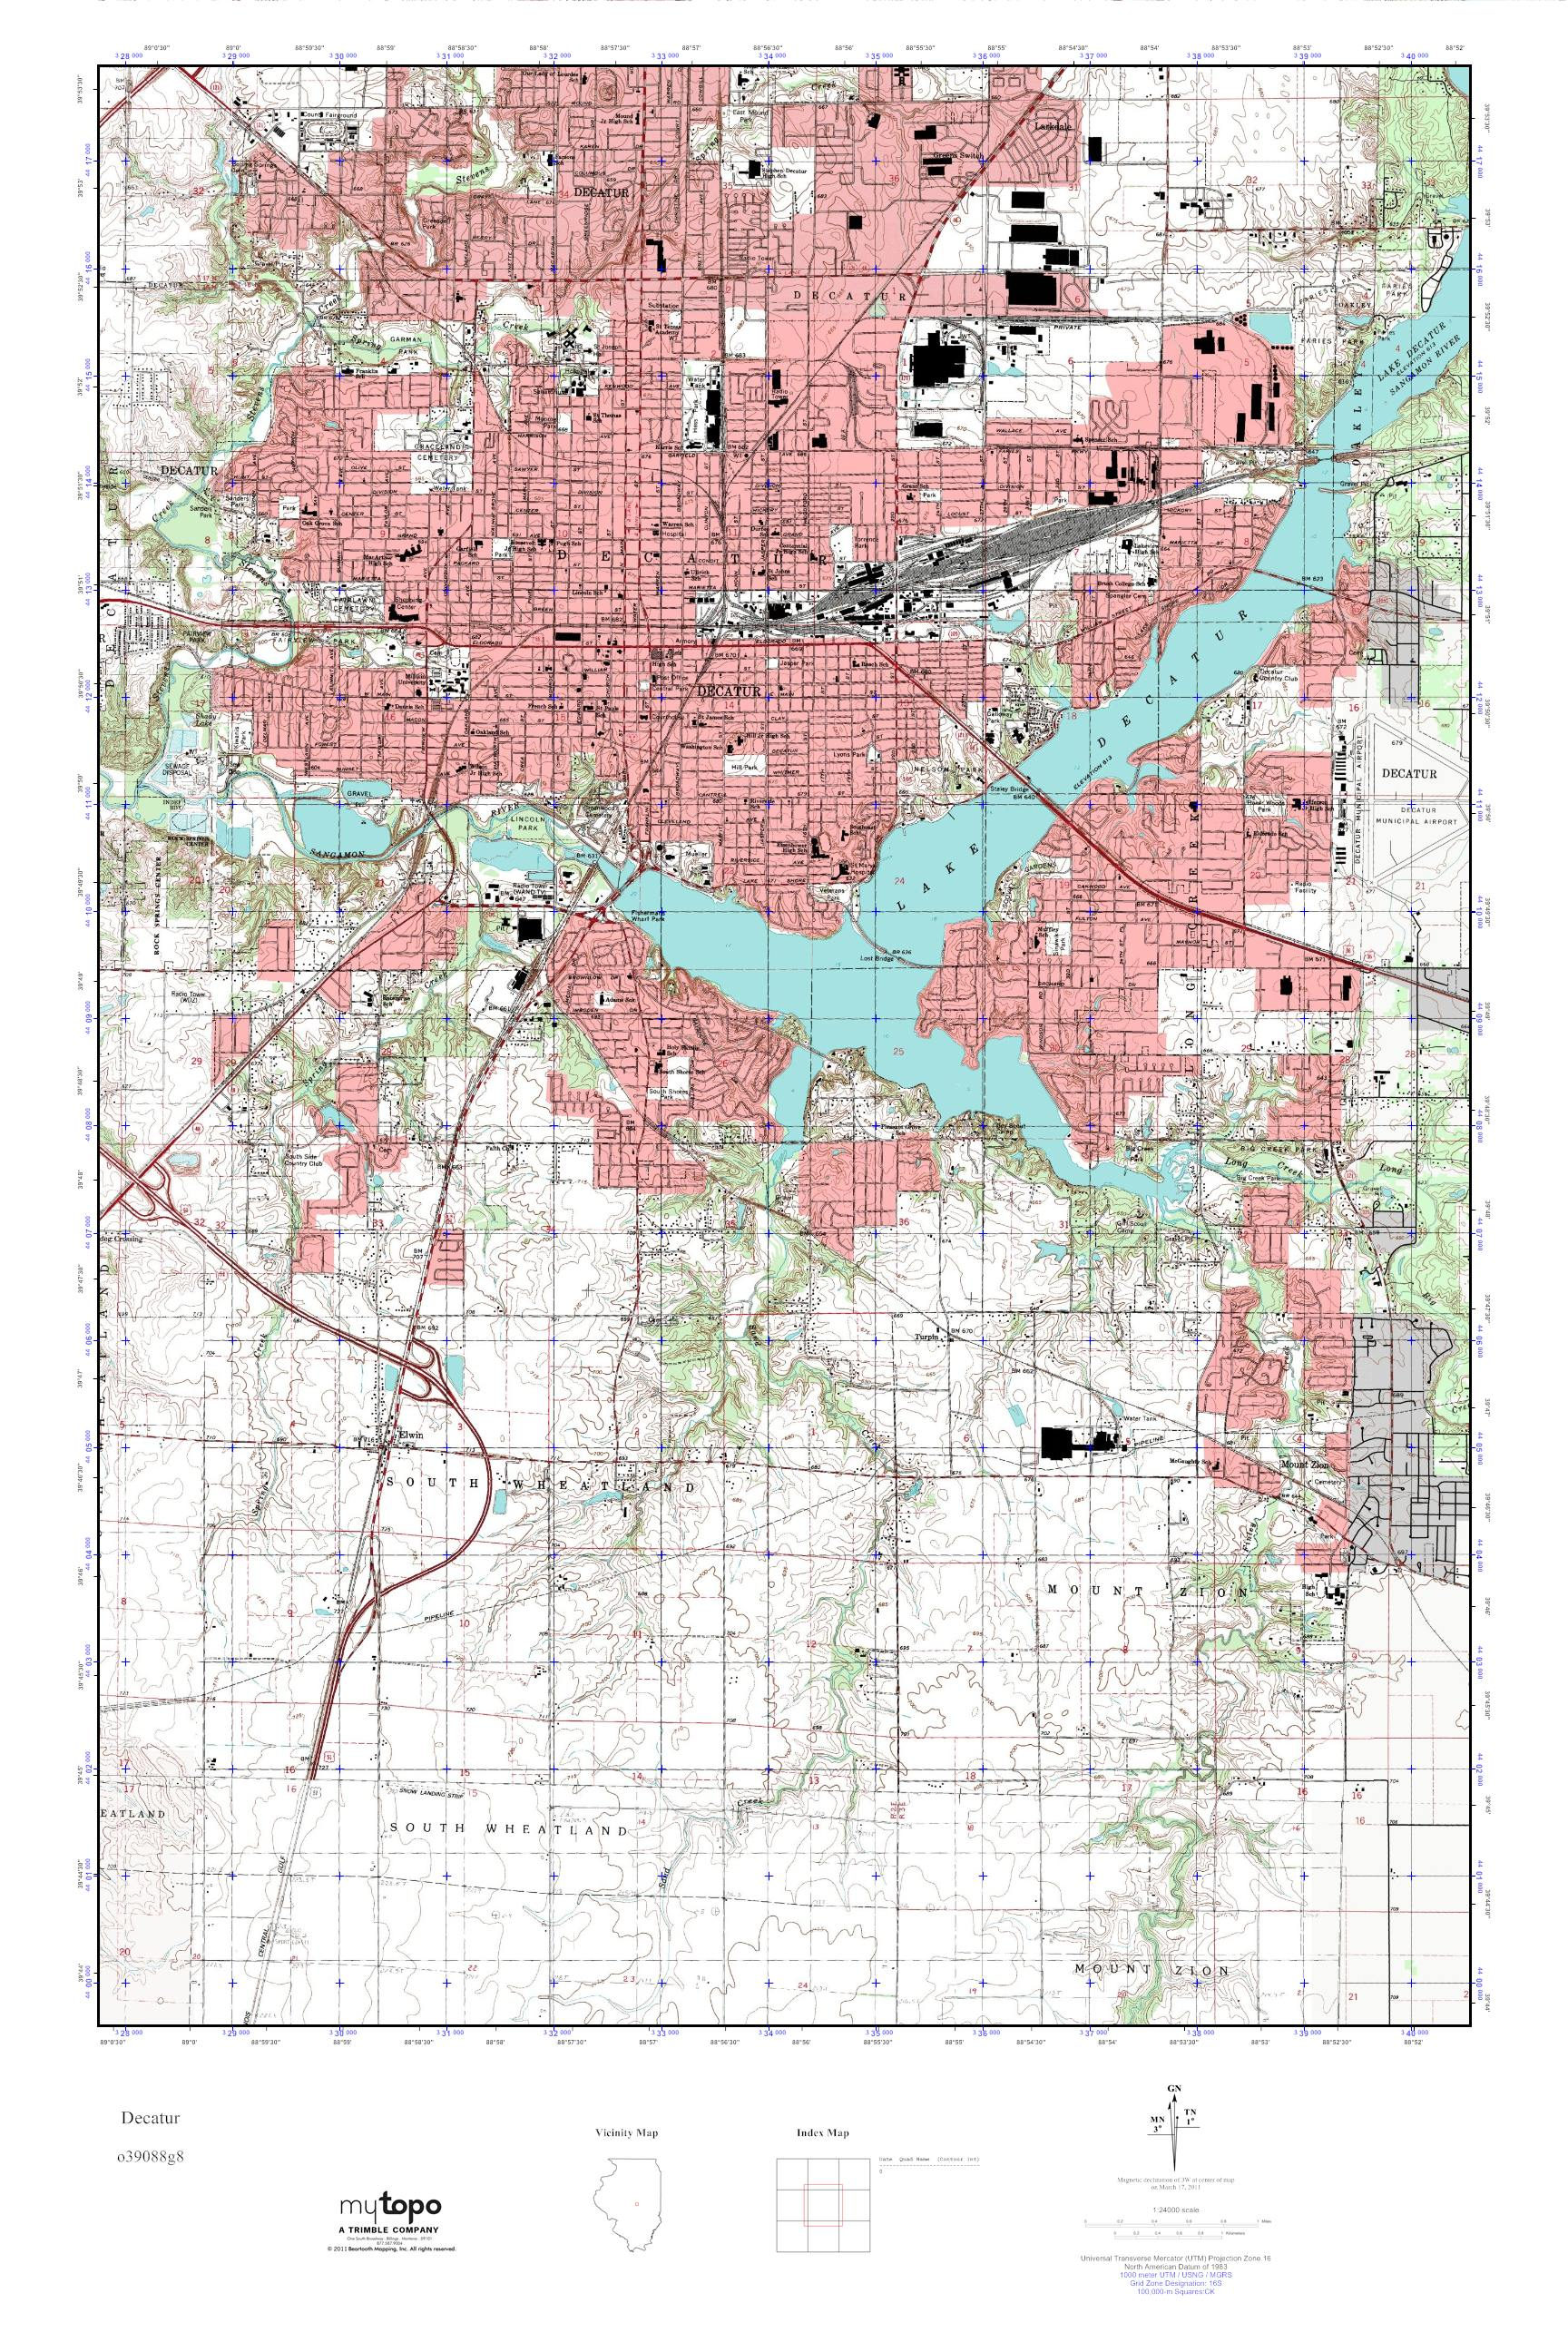 Decatur Illinois Map.Mytopo Decatur Illinois Usgs Quad Topo Map